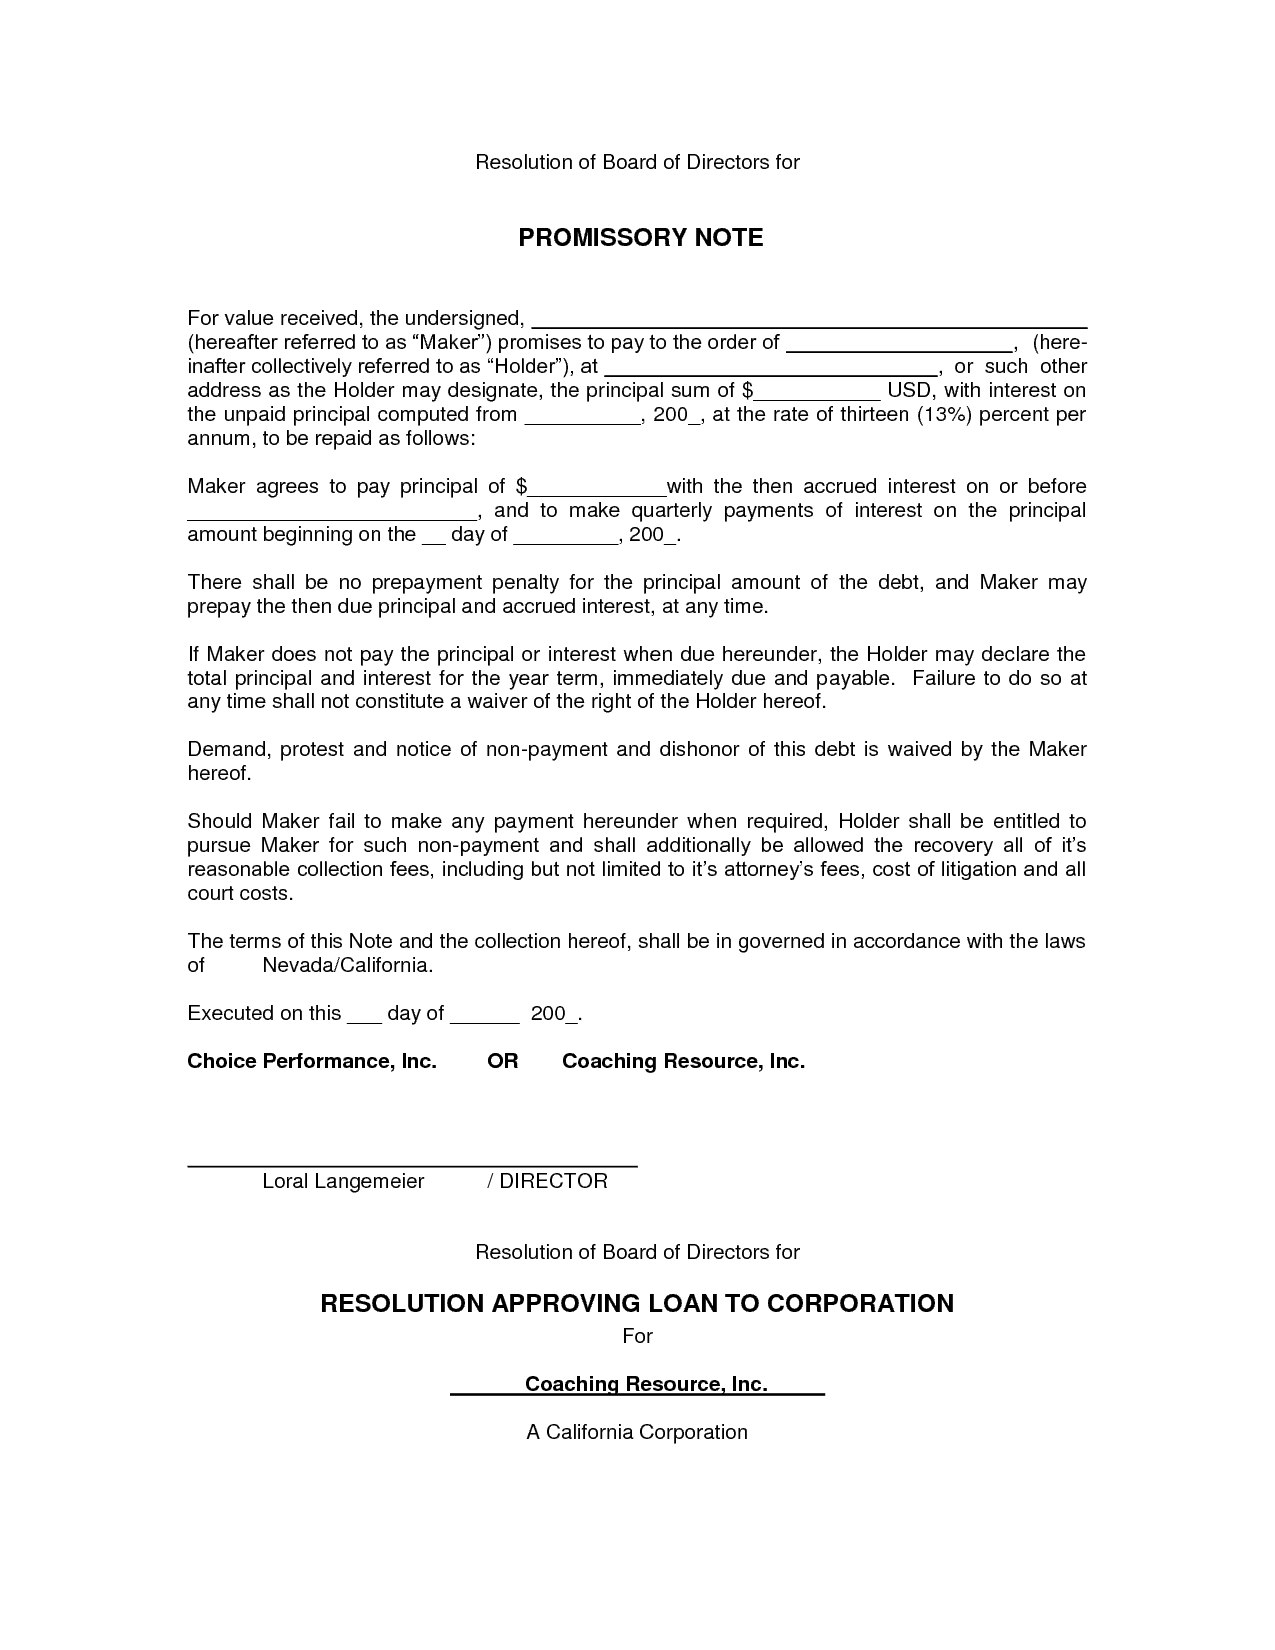 Conditional Promissory Note Template  Promisary Note Template